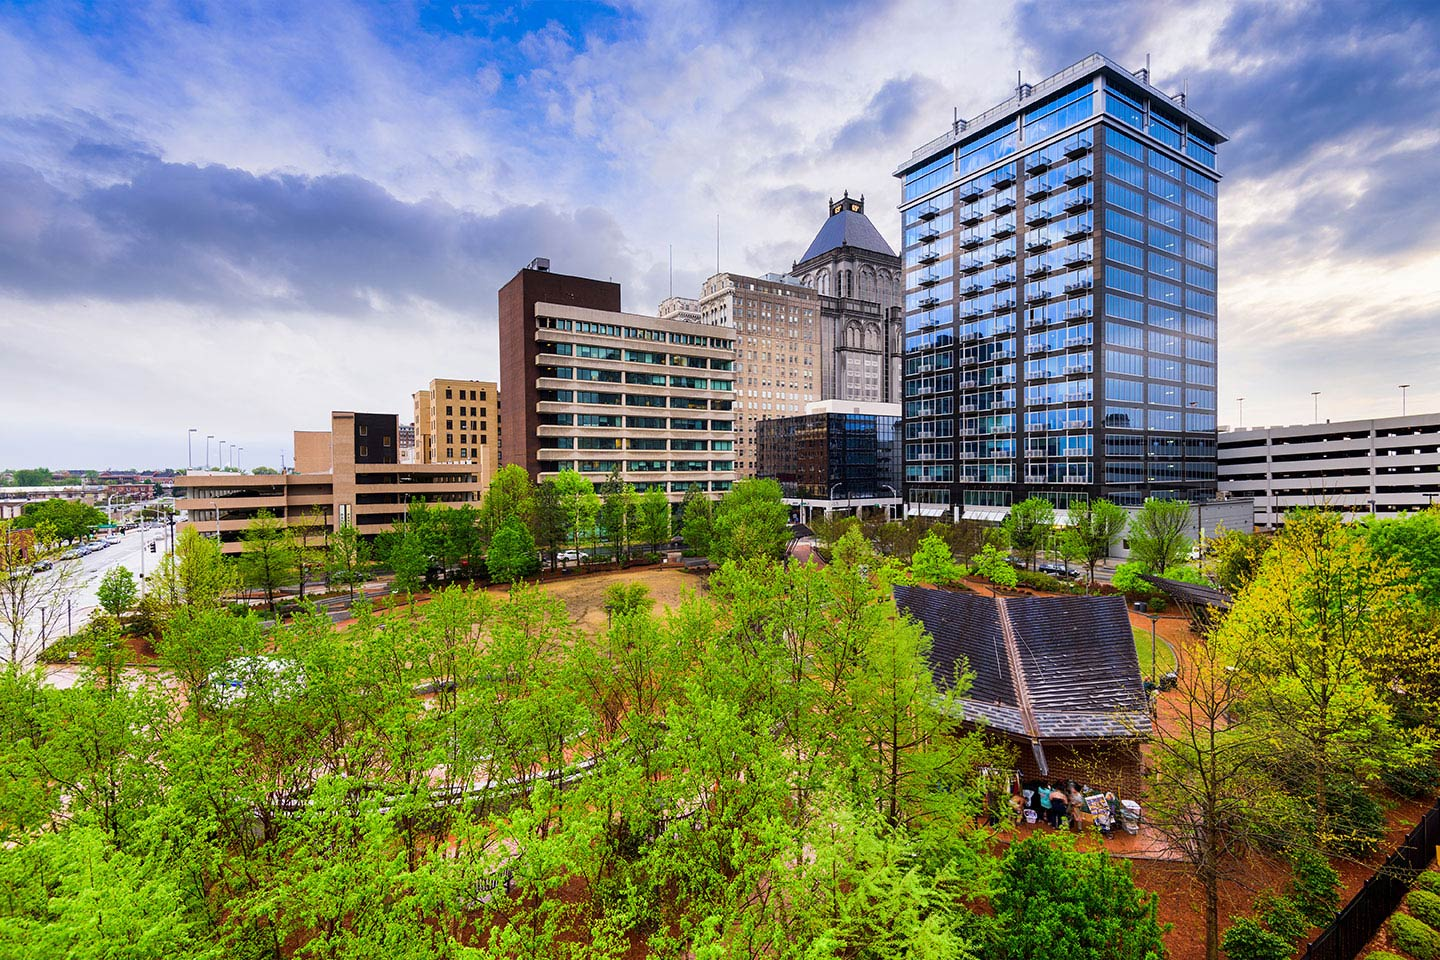 Downtown skyline of Greensboro lined with trees